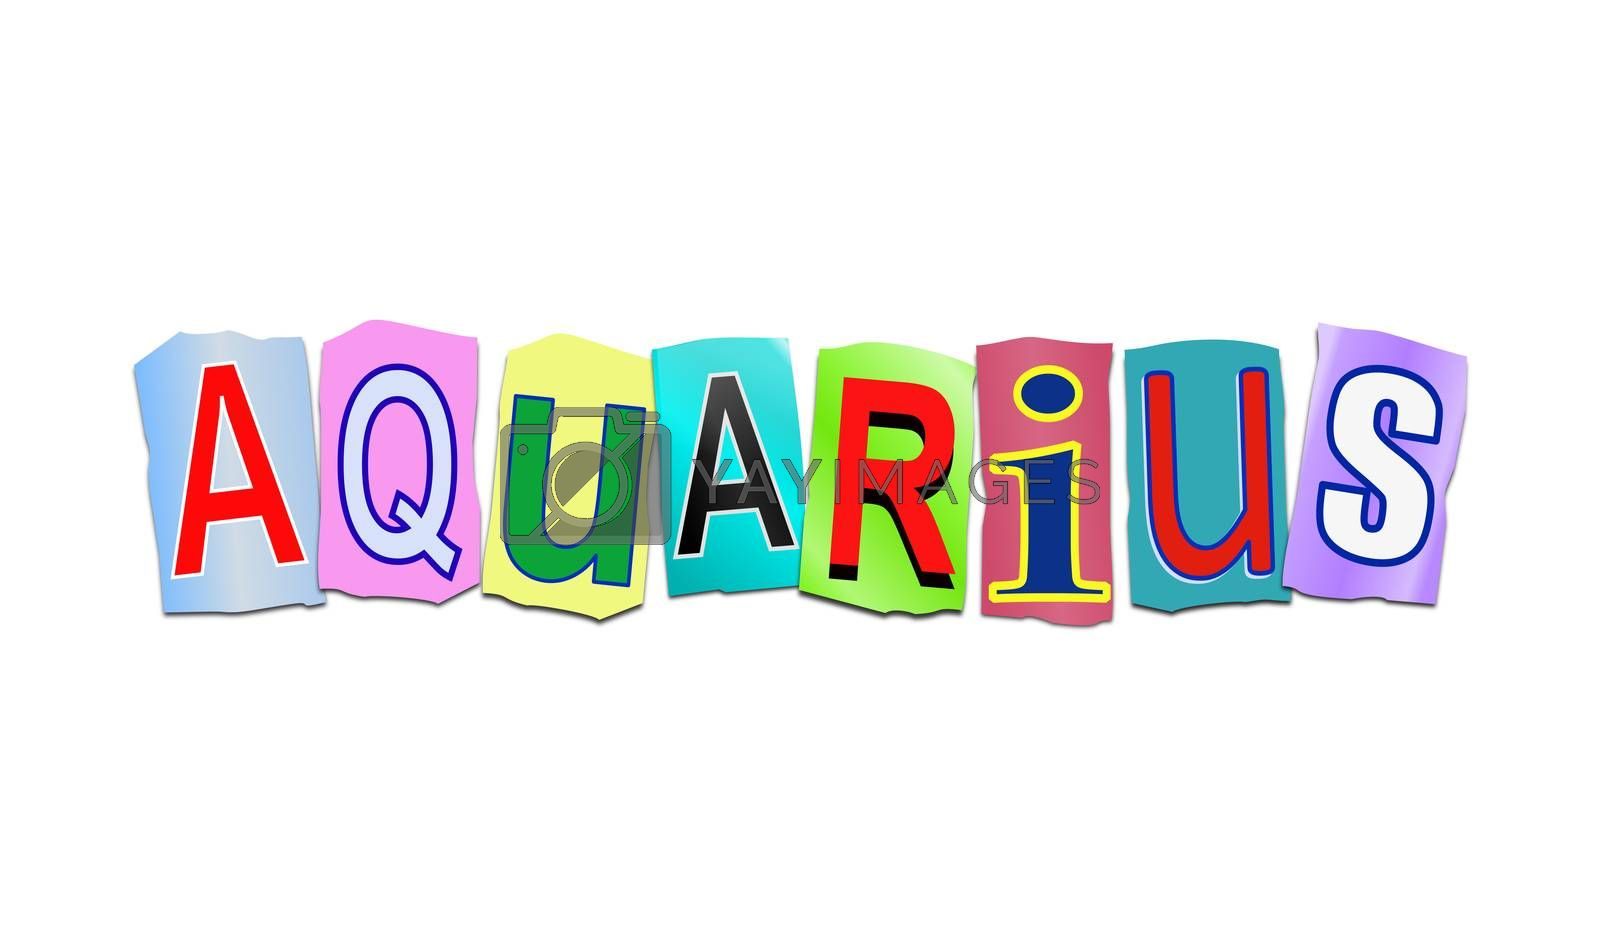 Illustration depicting a set of cut out printed letters arranged to form the word aquarius.